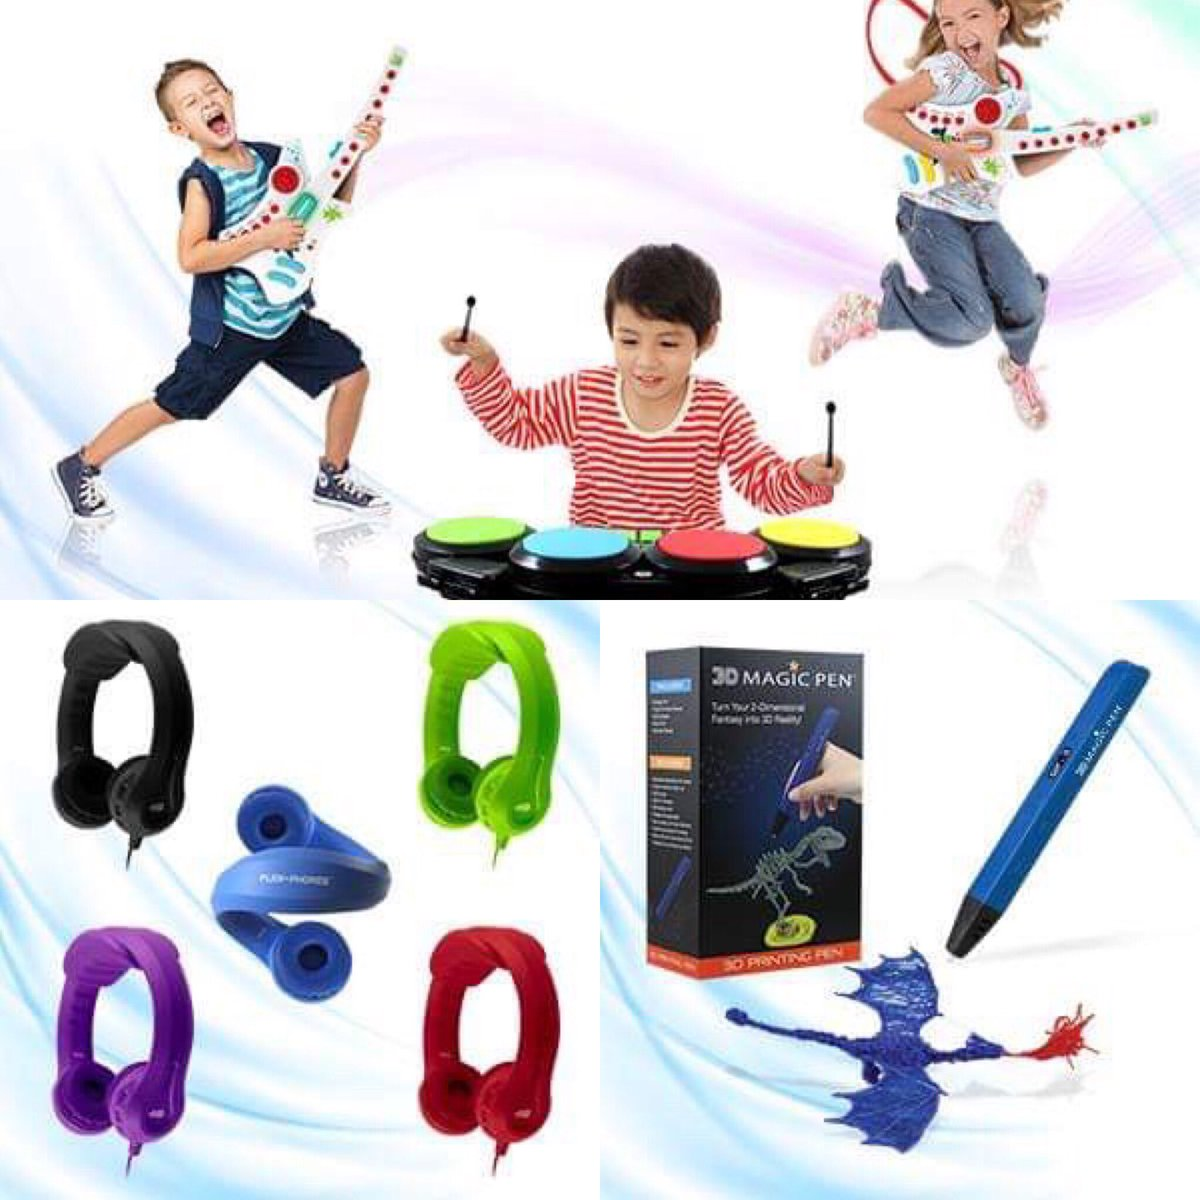 Looking for #classroom resources for #young #learners ? Check out the latest #STEM #STEAM products & #headphones designed for younger learners from #Hamiltonbuhl😎 Call toll free 866 926 1669 https://t.co/ZltaYuP212  #headset  #testing #STEMDirector #curriculumdirector https://t.co/9Kc6IapQX9